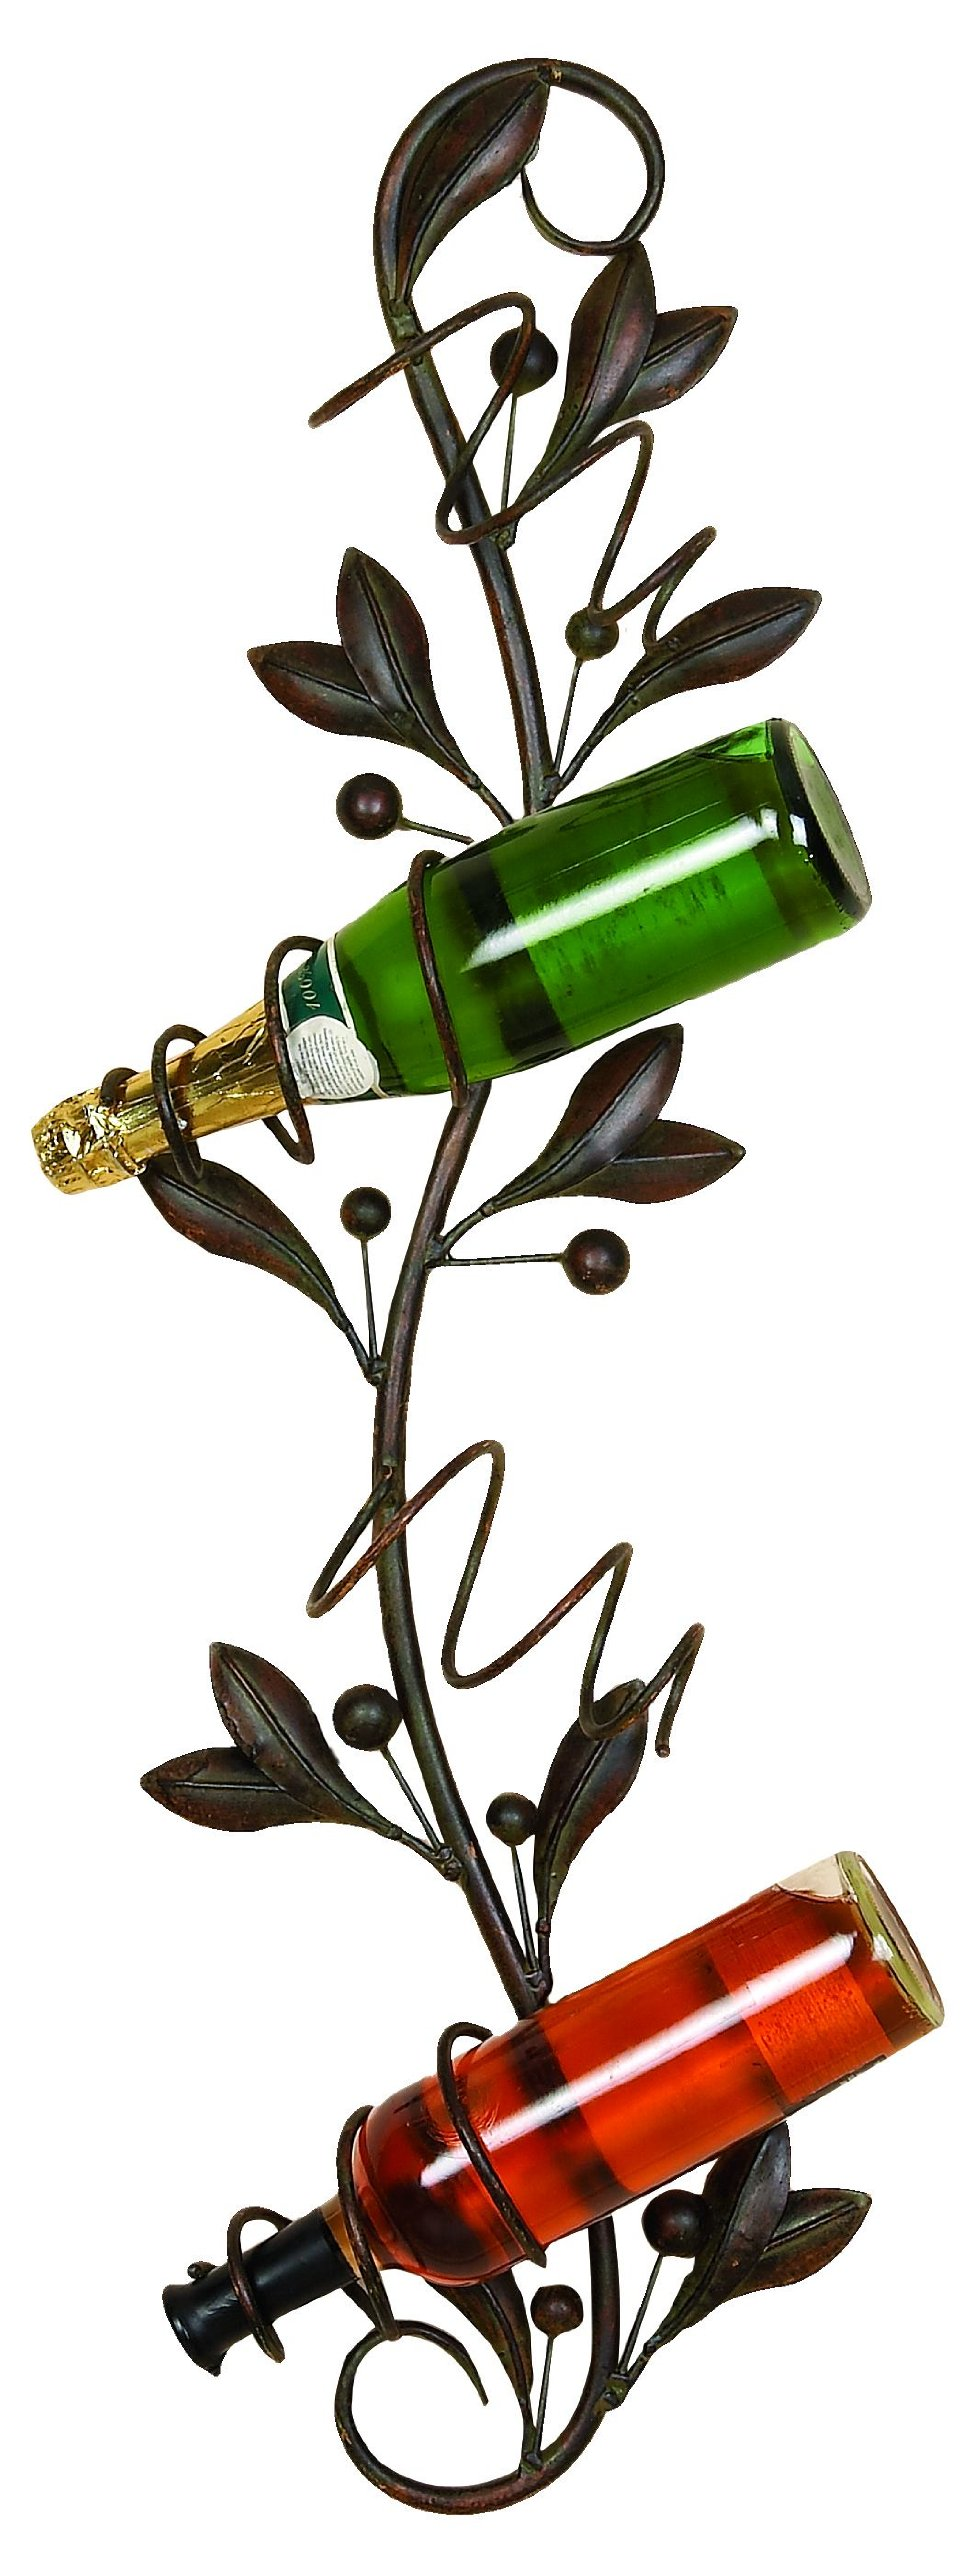 Deco 79 99506 Metal Wall Wine Holder 35''H, 10''W by Deco